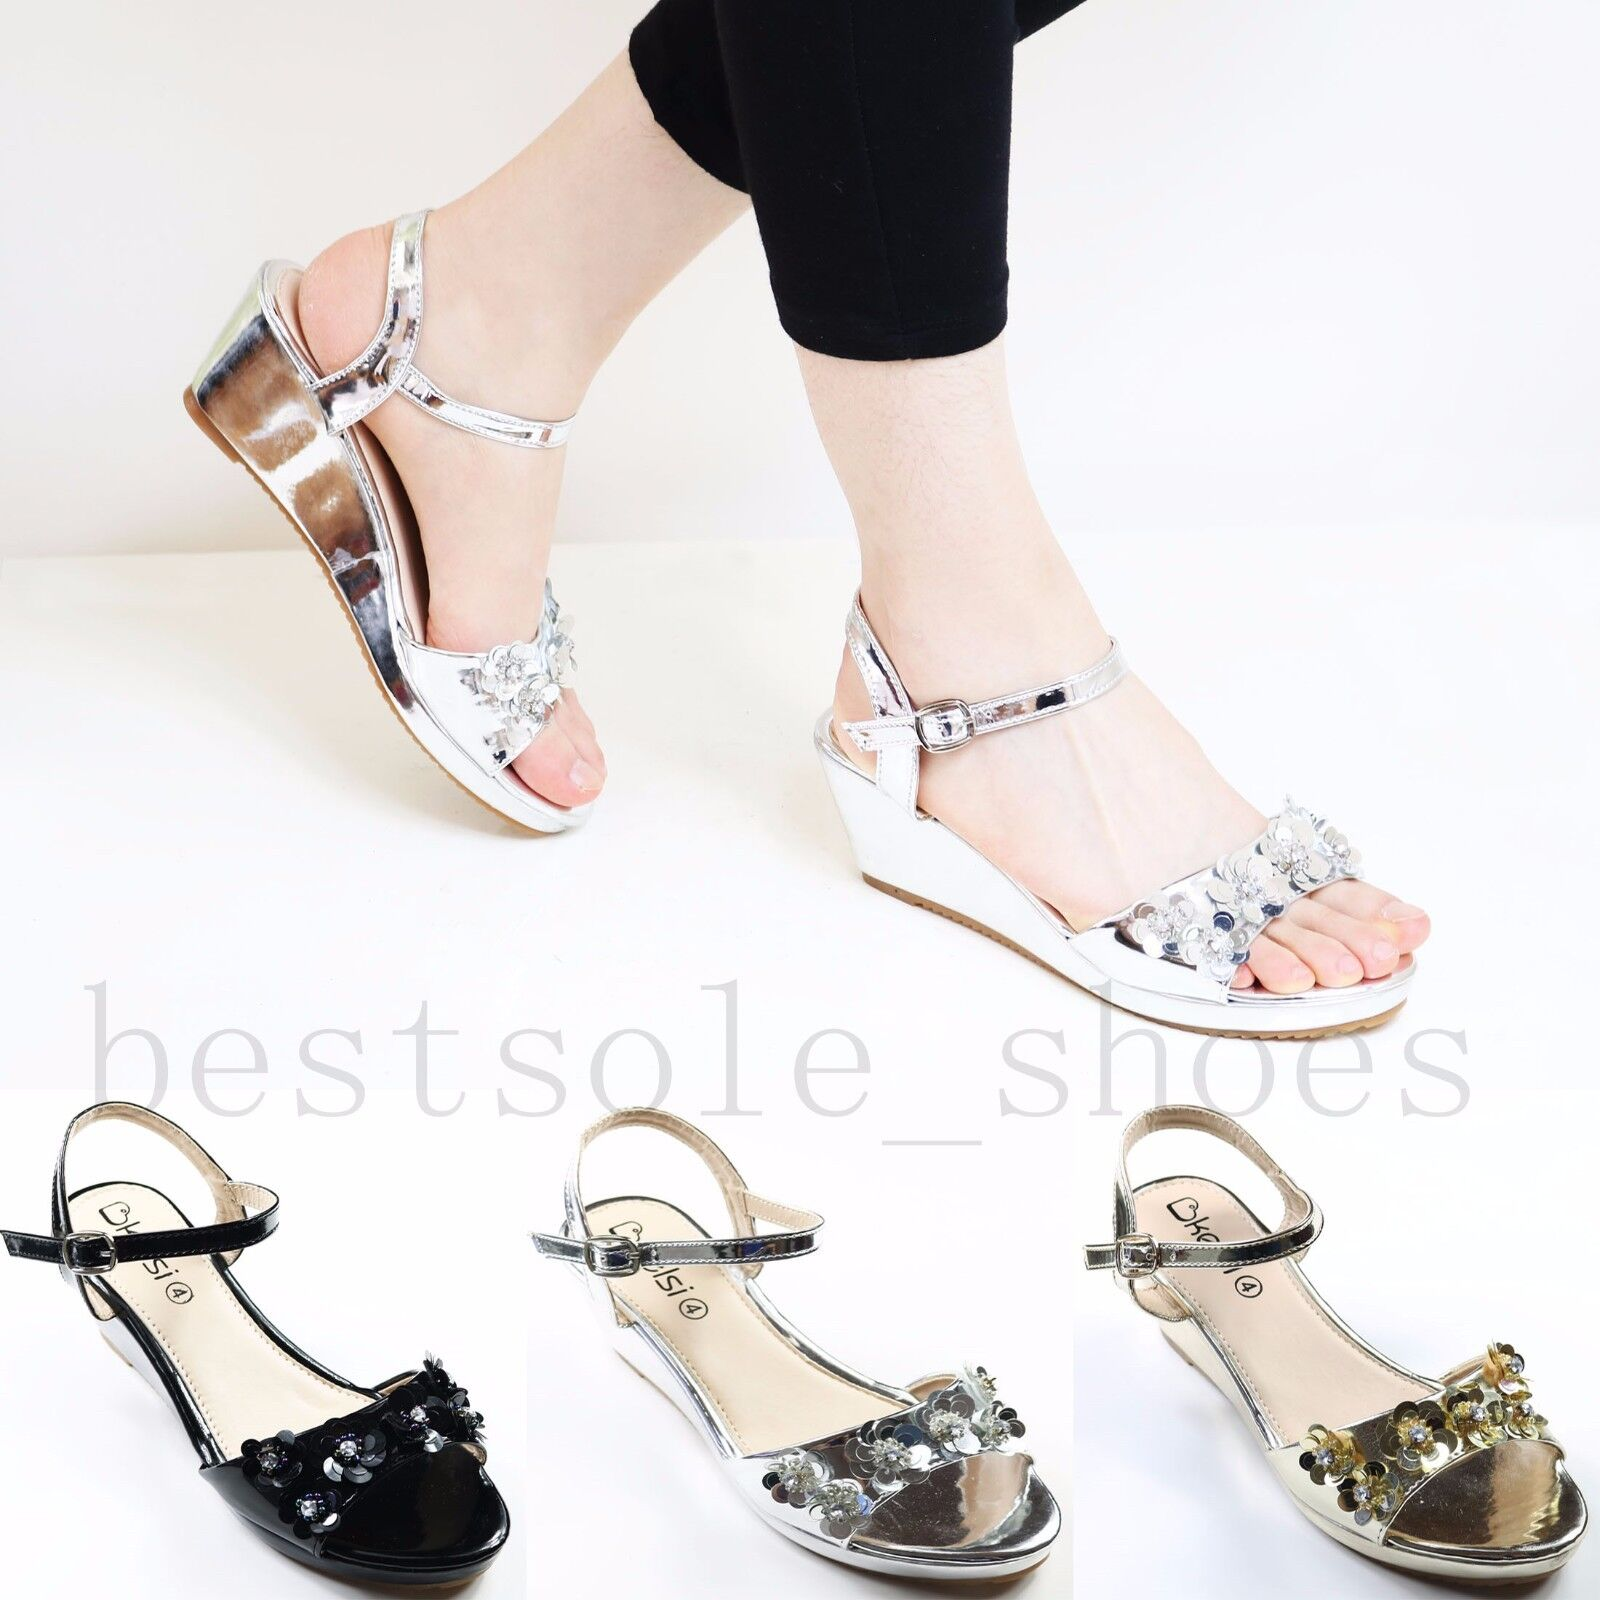 NEW WEDGES WOMENS LADIES ANKLE STRAP FLORAL PLATFORM WEDGES NEW SANDALS SUMMER HEELS SHOES f5a3b7